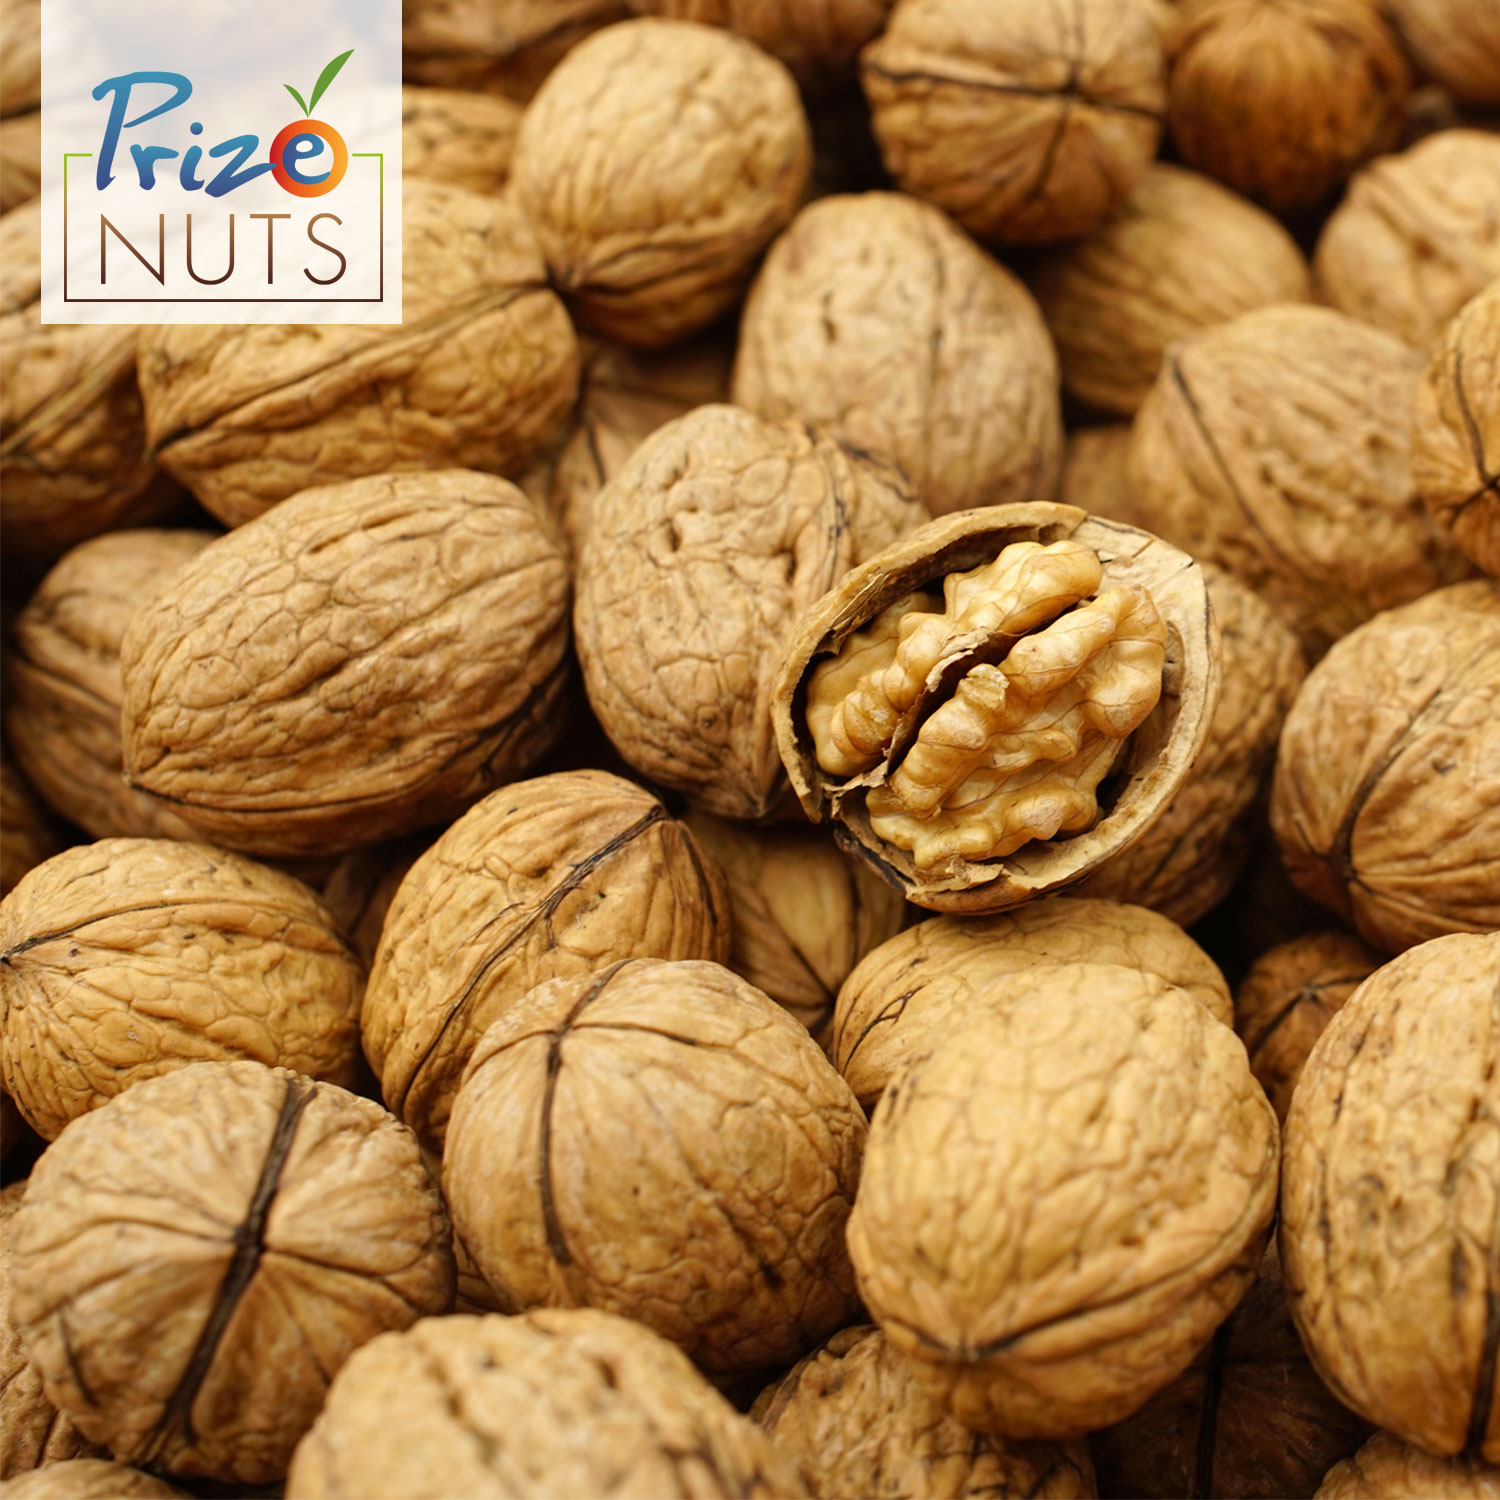 Nueces Prize Nuts